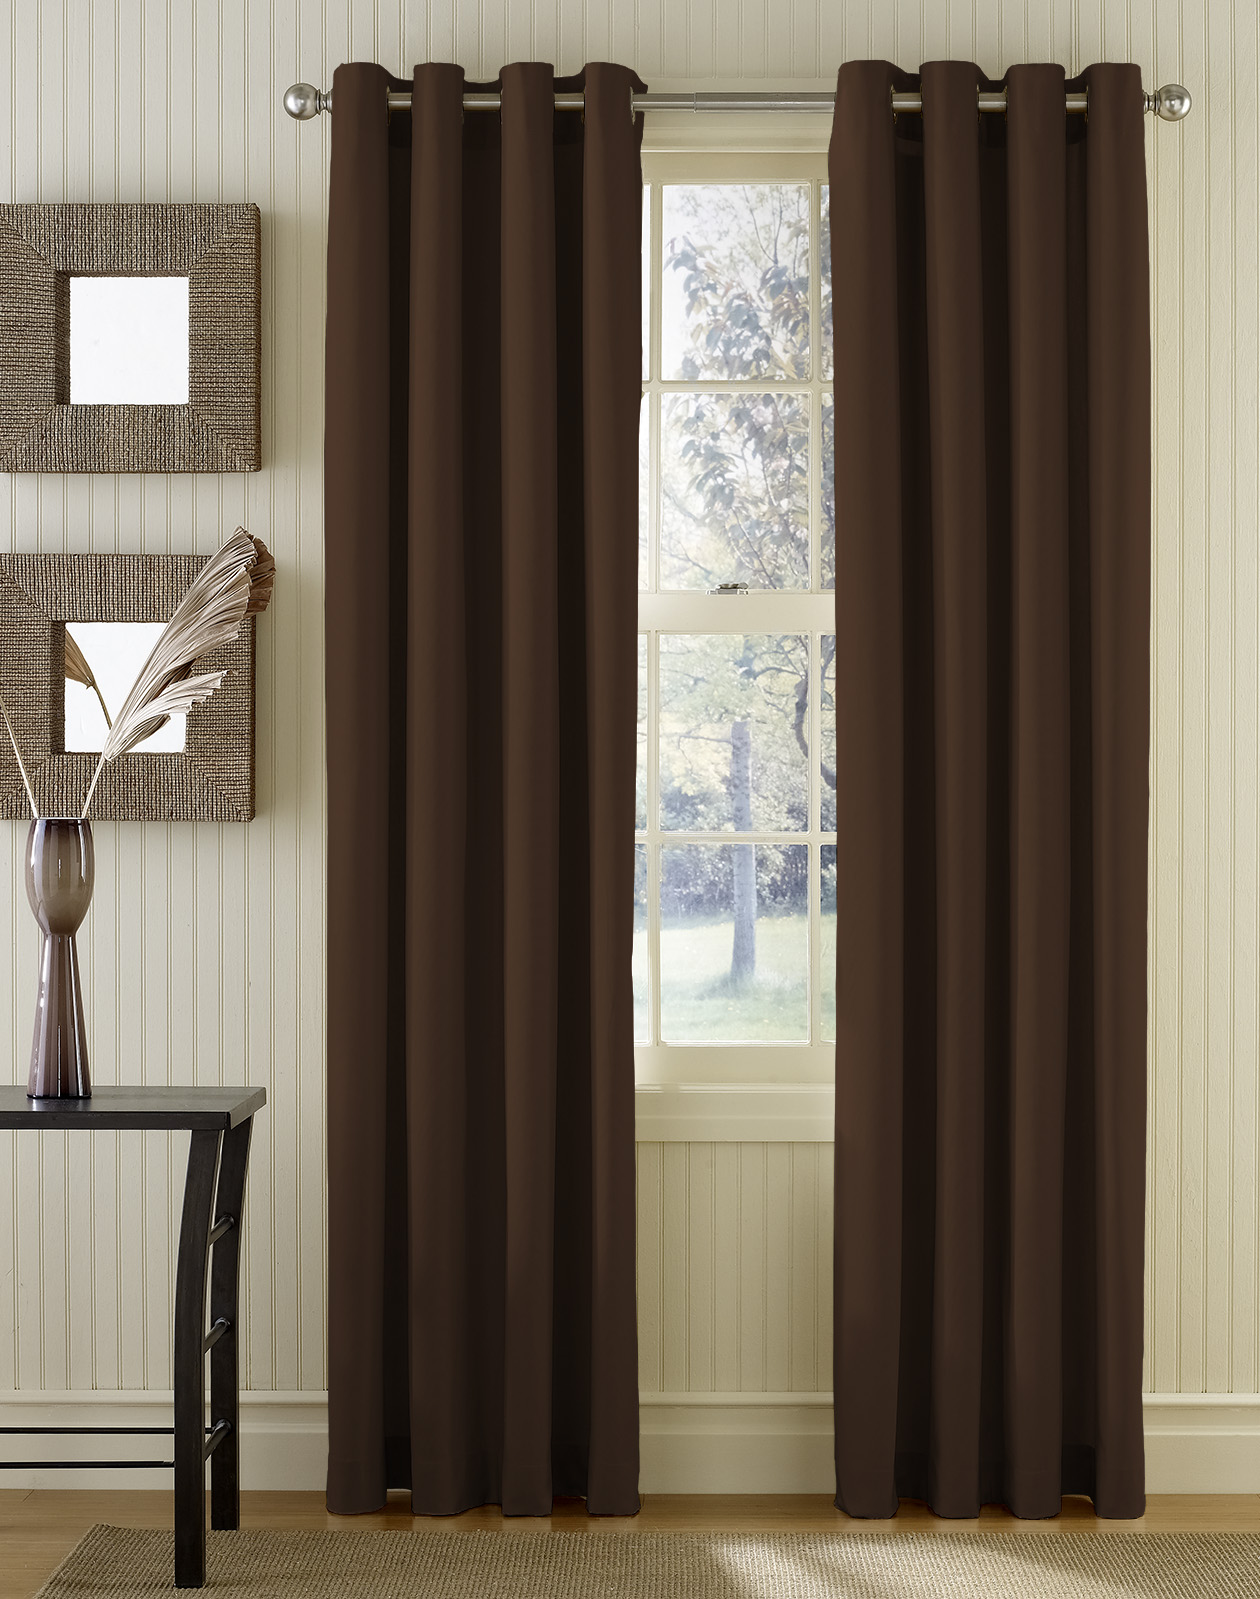 Curtain Interior Design What Is Minimalist Design